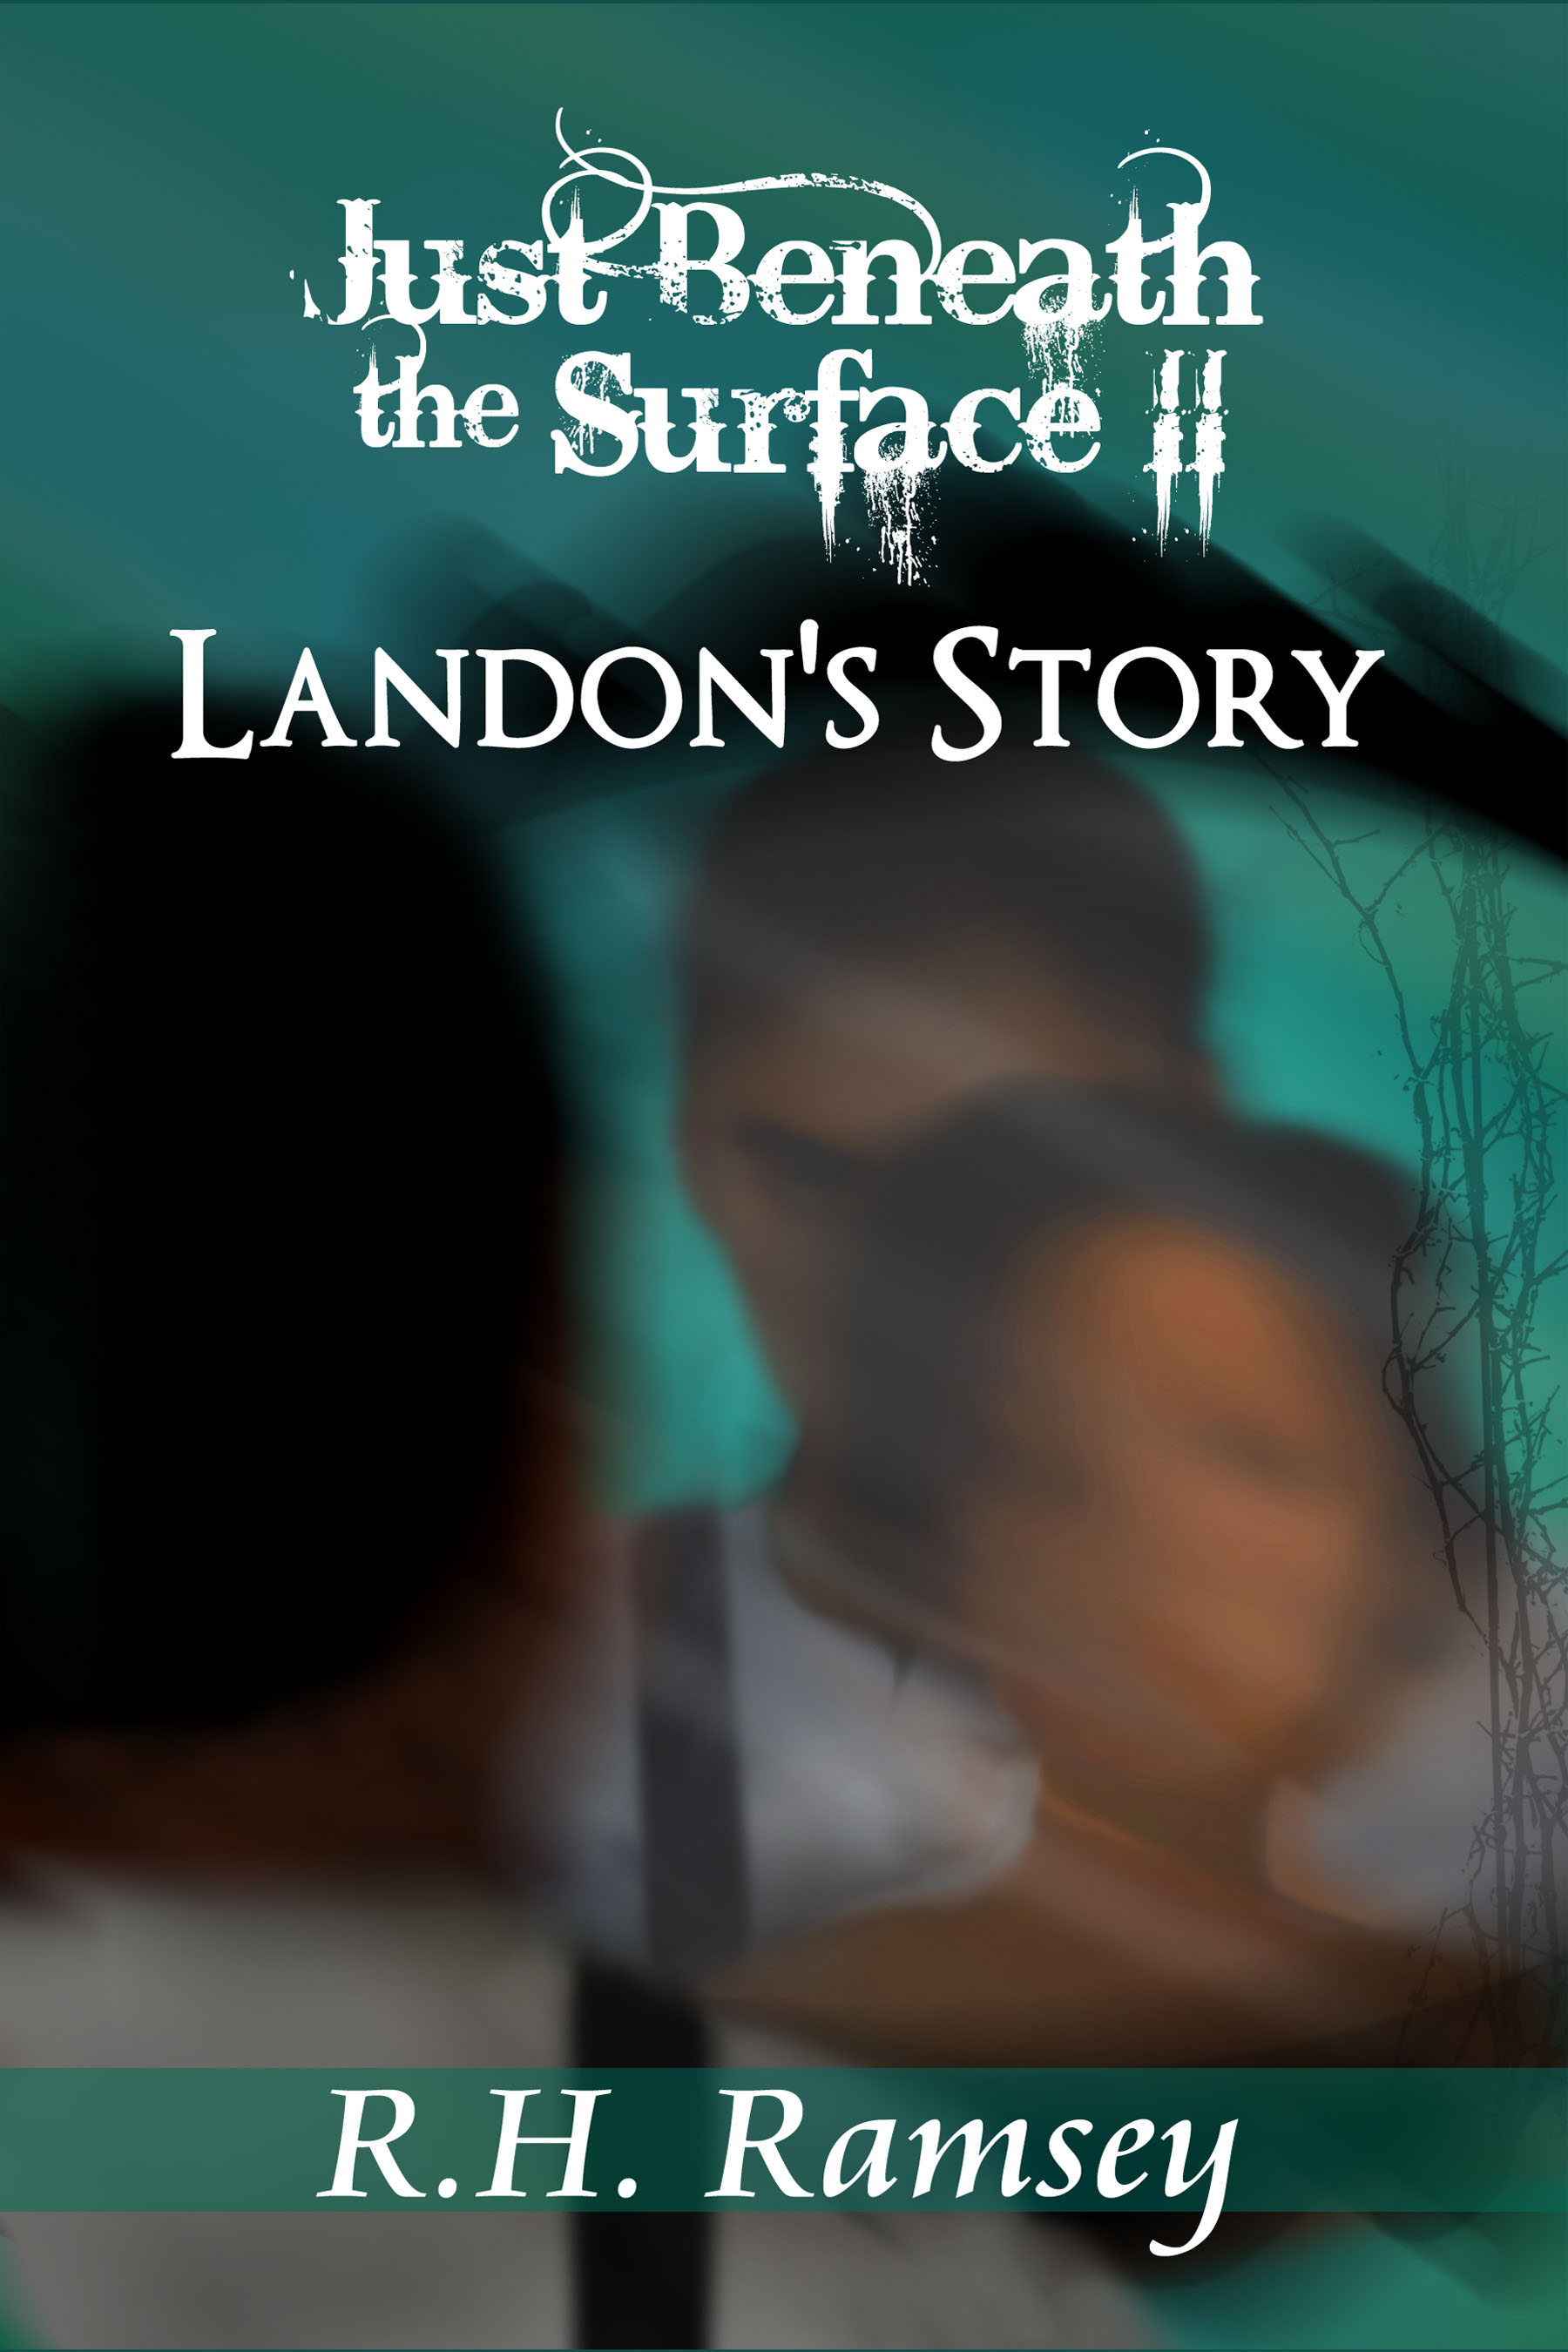 Just Beneath the Surface II: Landon's Story